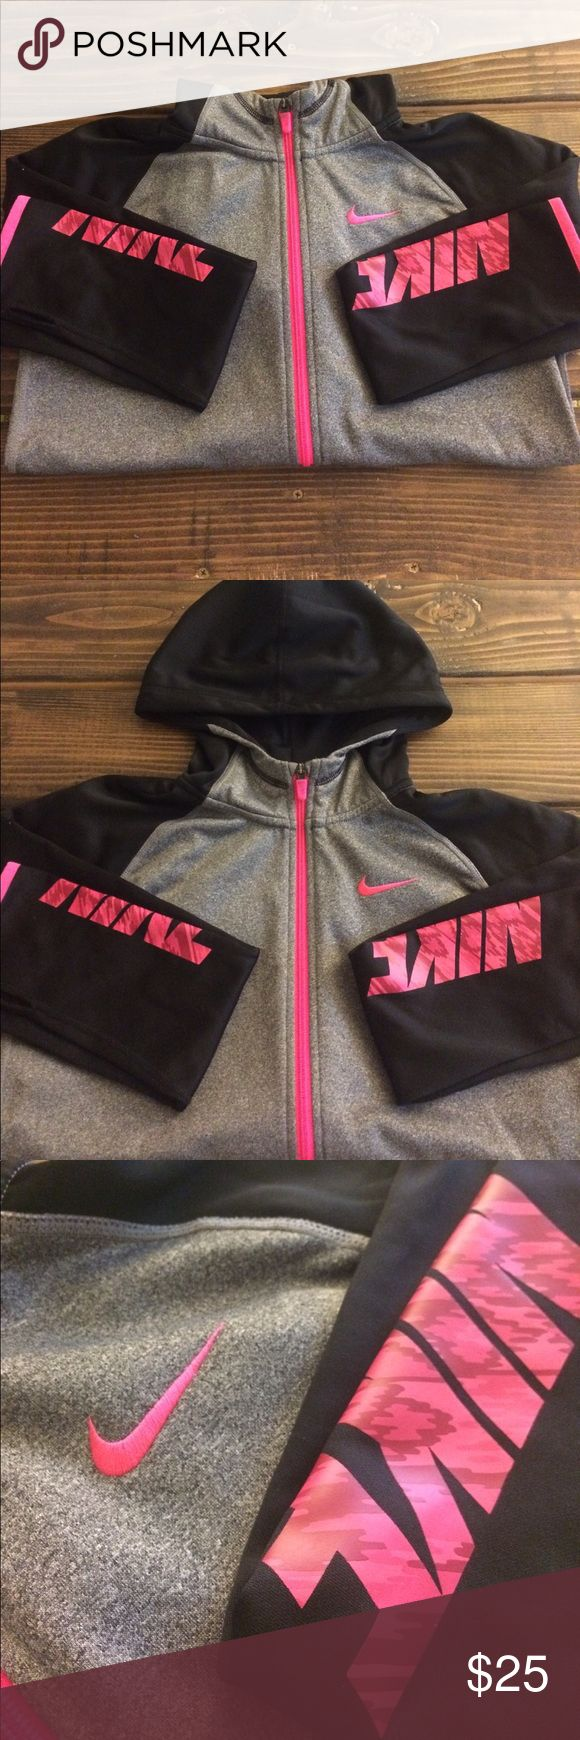 Nike Track Jacket New without tags Nike Dri-Fit Track Jacket. Soft lining. Hot pink accents, black sleeves and hood, heather gray front and back. Nike print on both sleeves. Thumb hole on both sleeves. Double front pockets. Like new! Nike Jackets & Coats